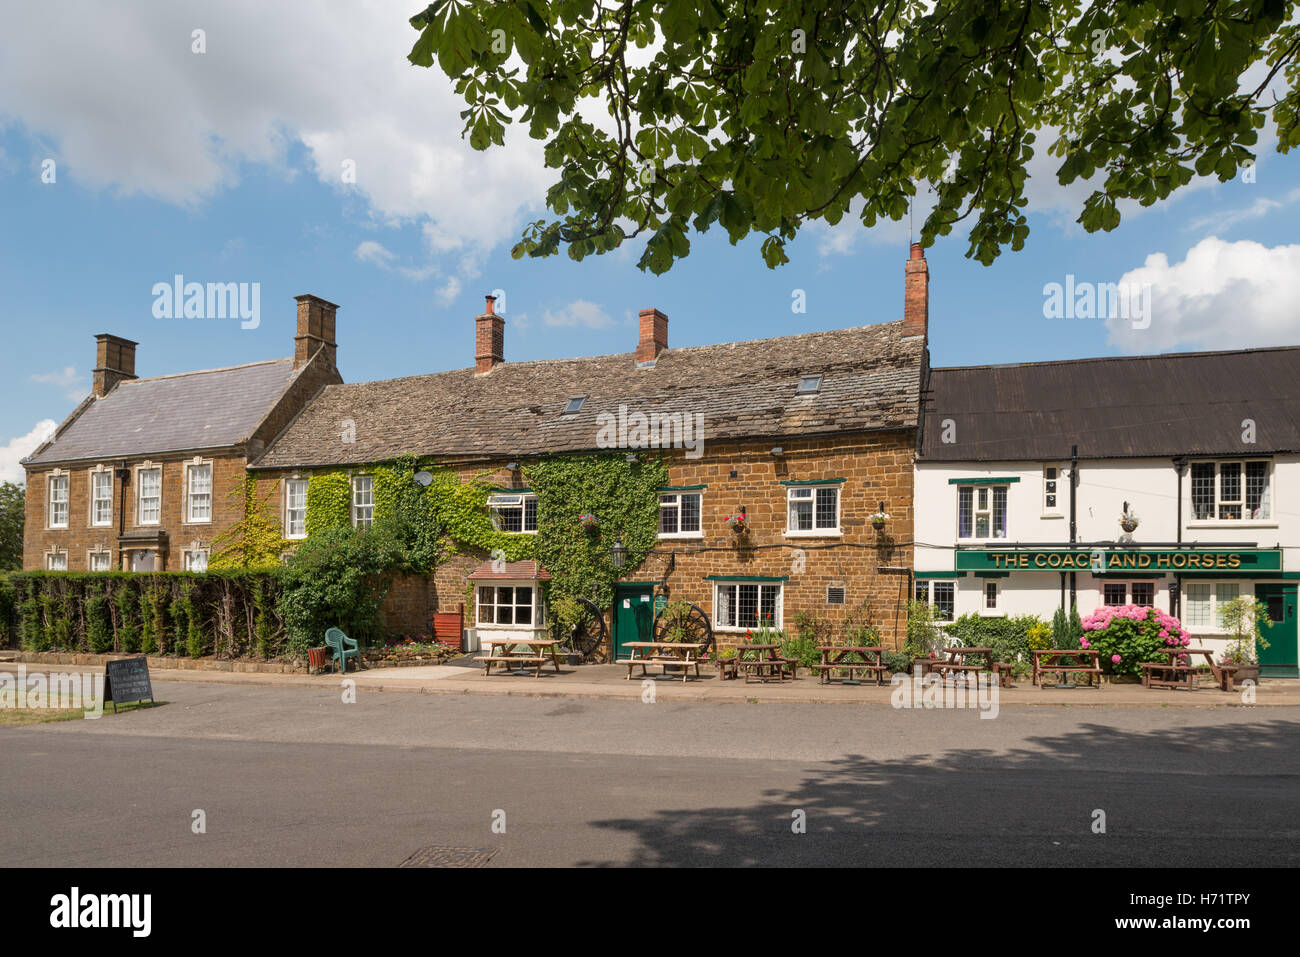 The Coach and Horses (right) and property in the village of Adderbury, North Oxfordshire, England, UK - Stock Image